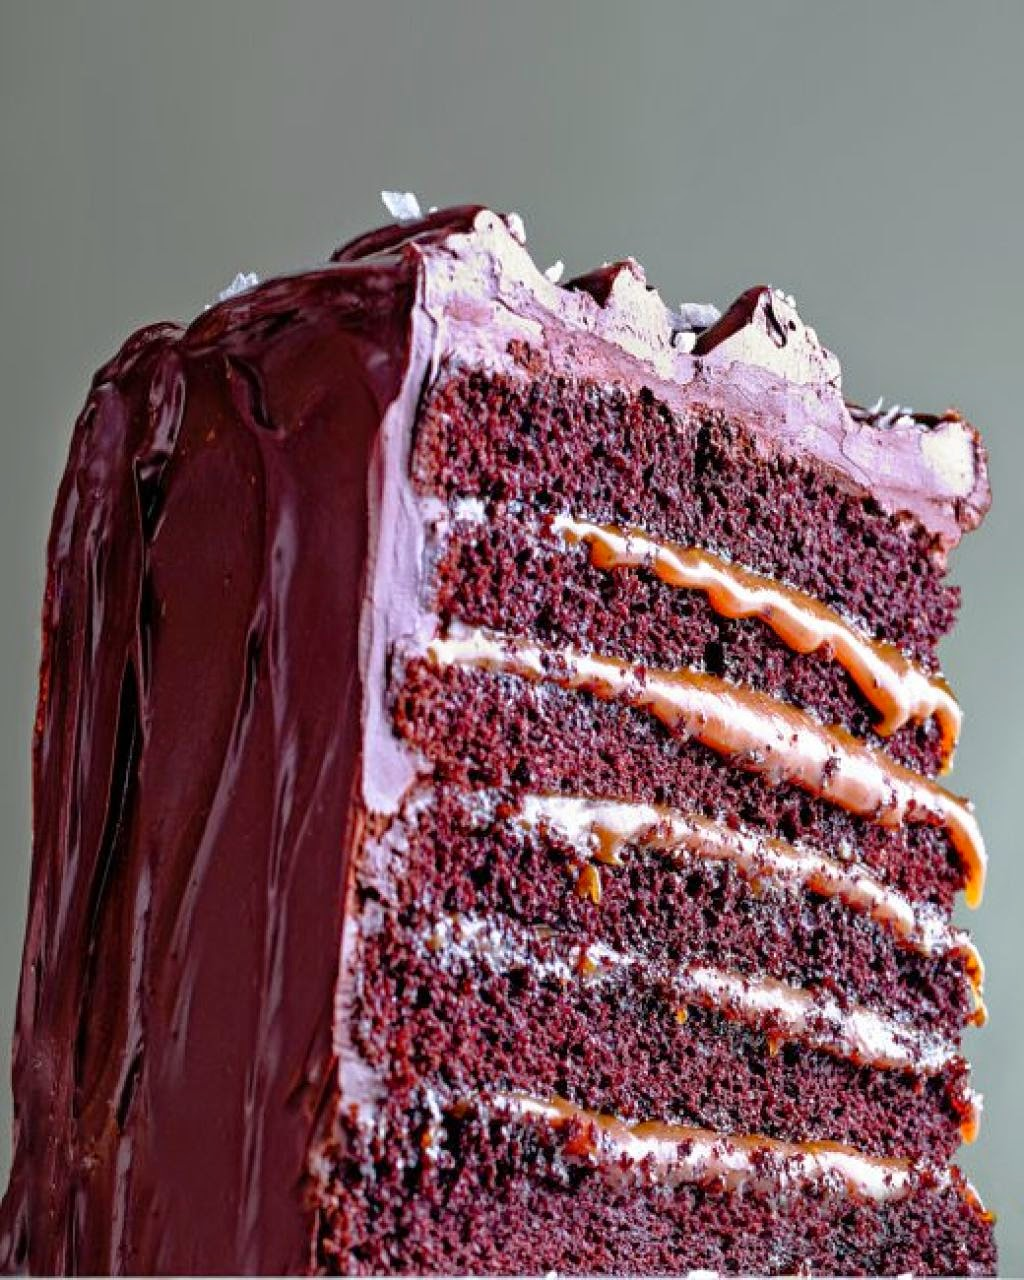 salted-caramel-six-layer-chocolate-cake-5424cf89017ef.jpg